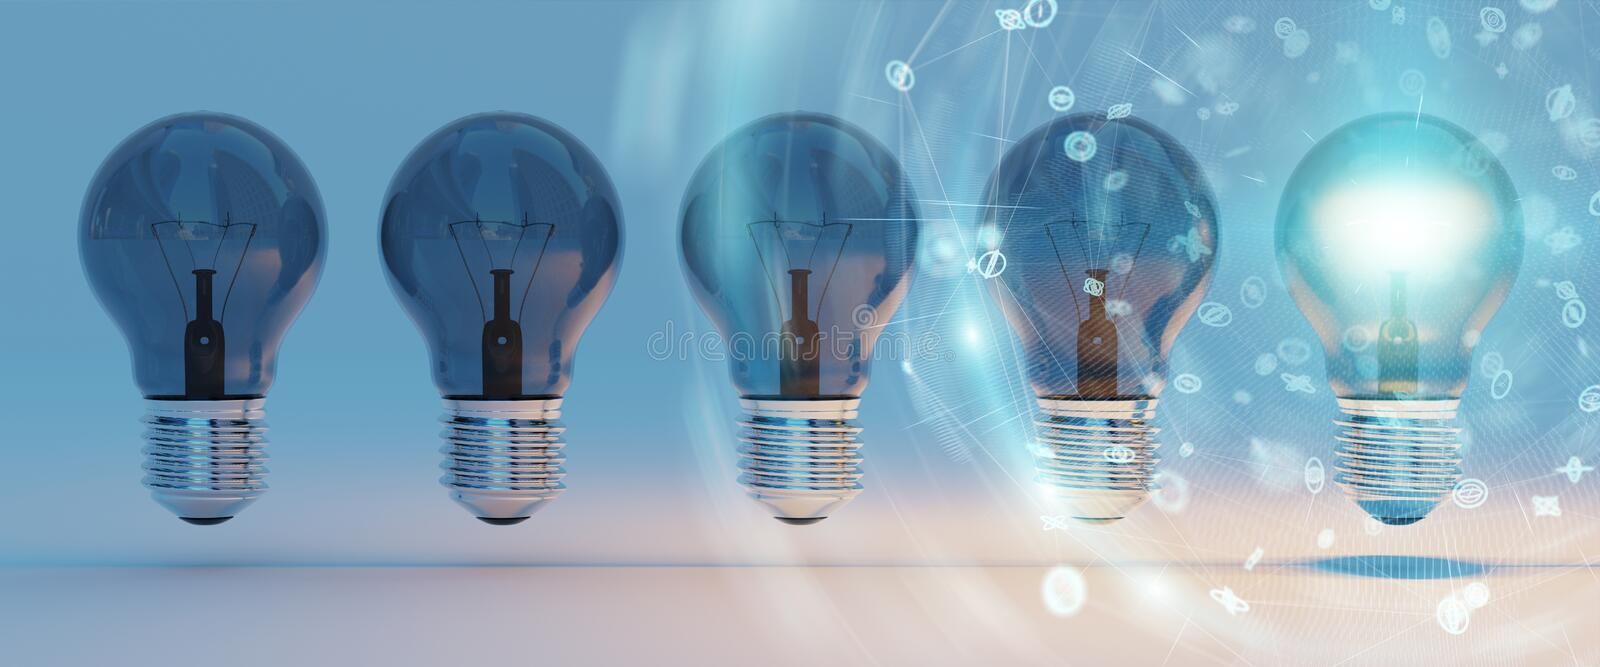 Bright lightbulbs and connections lined up 3D rendering stock illustration